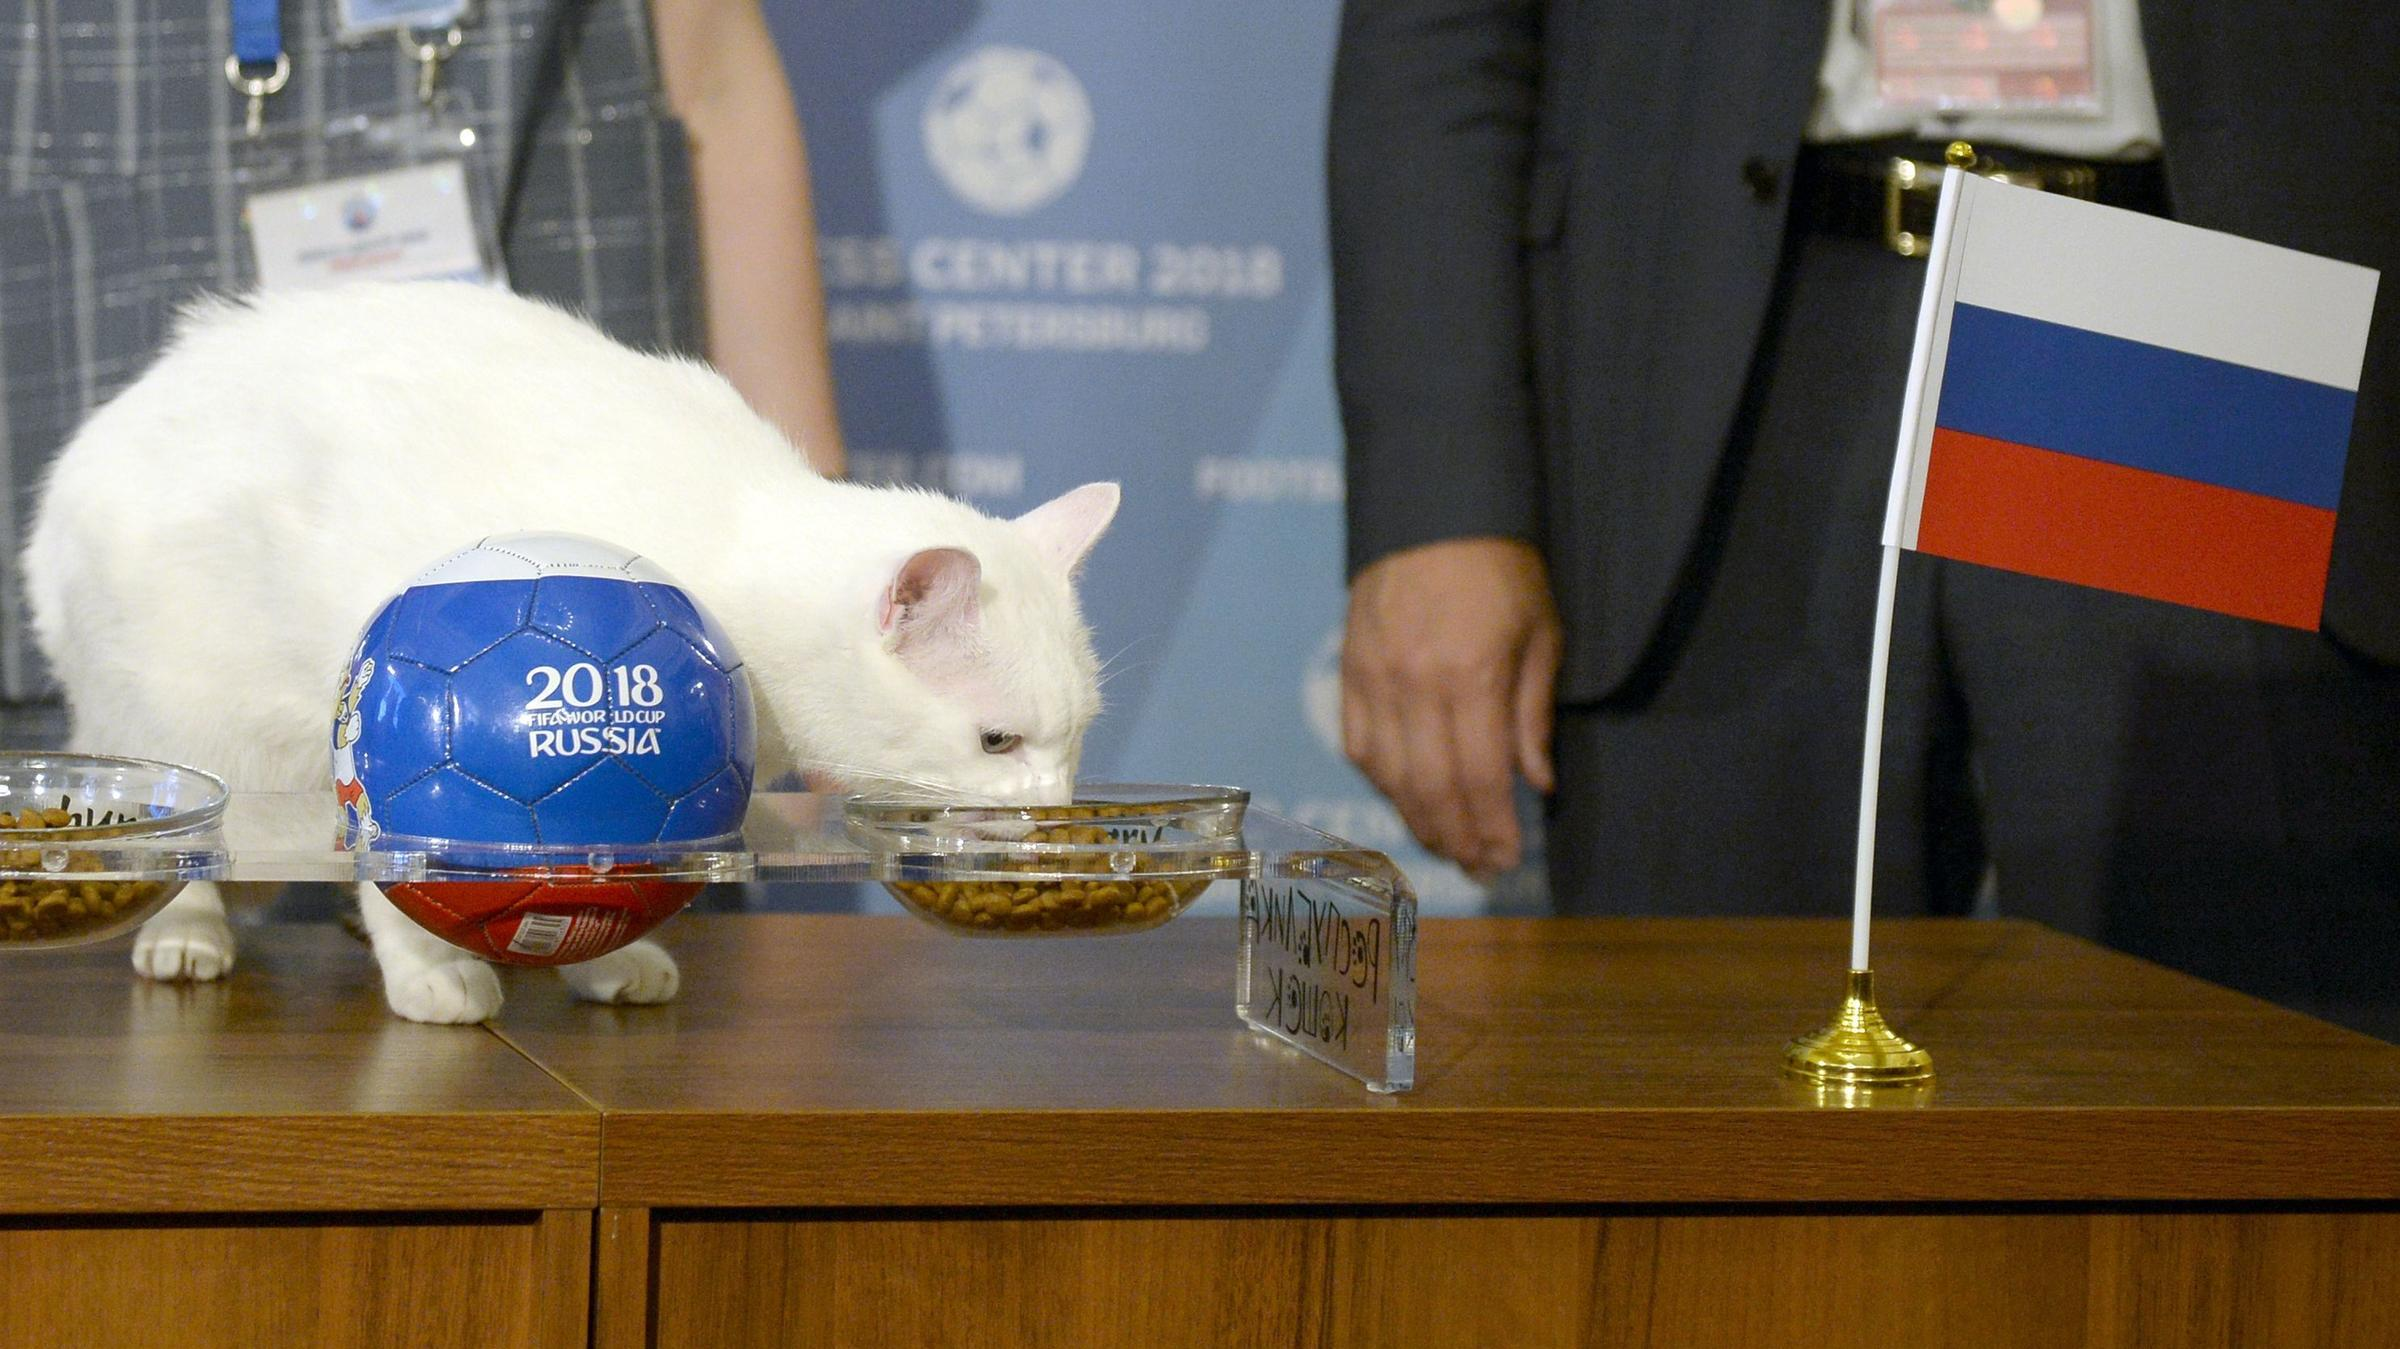 Achilles the cat predicted Wednesday that Russia would win its game against Saudi Arabia. He's been training hard as an official animal psychic.